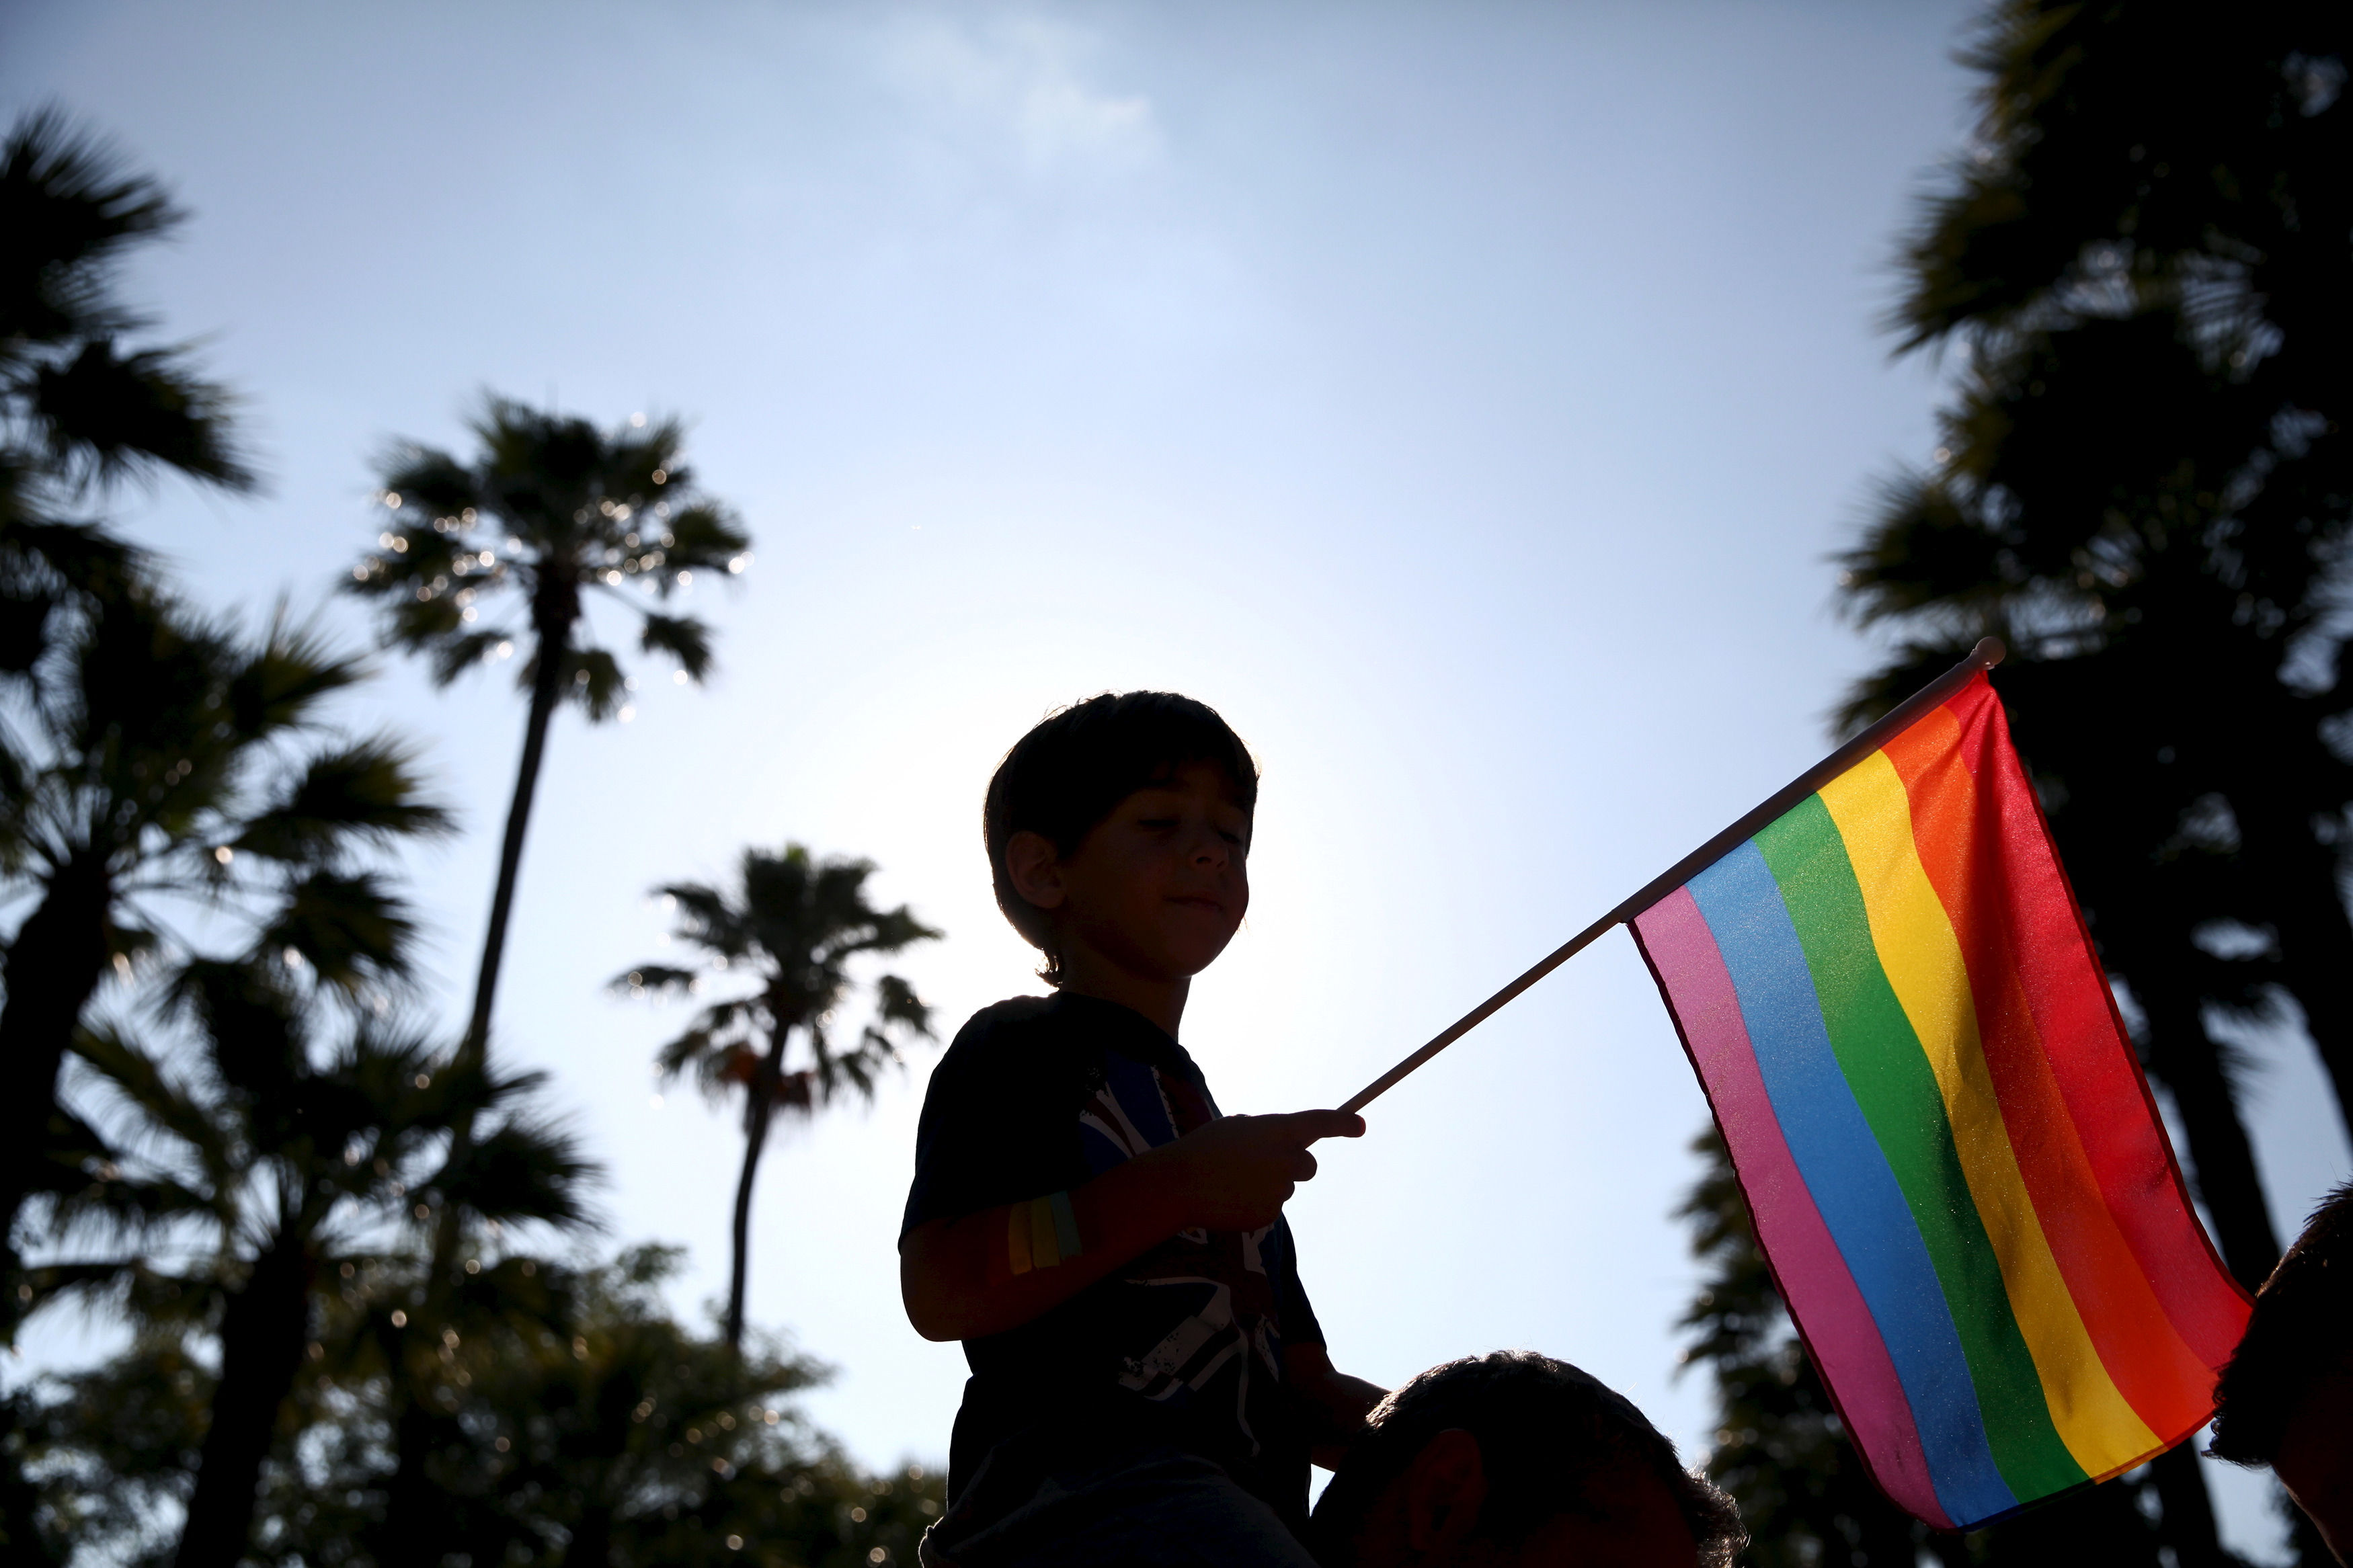 A boy waves a rainbow flag during a Gay Pride march held in Nicosia, Cyprus on June 6, 2015. Cyprus recently passed legislation penalizing incitement to hatred on grounds of sexual orientation and authorities say they are preparing legislation for civil partnerships. Photo by Yiannis Kourtoglou/Reuters